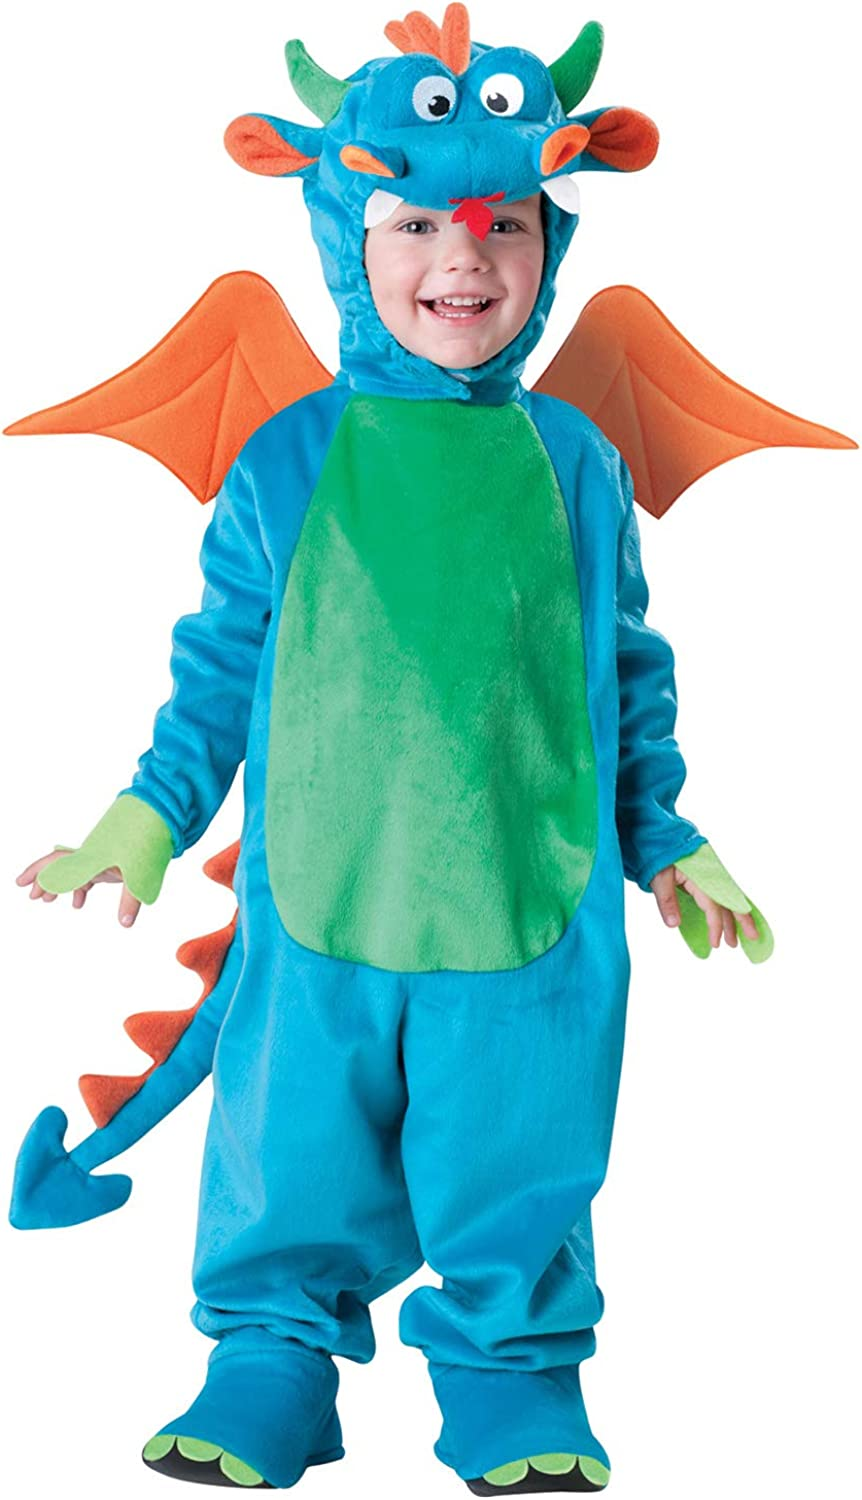 Max 83% OFF InCharacter Costumes LLC Dinky Dragon Mediu Green Orange Blue Sales of SALE items from new works